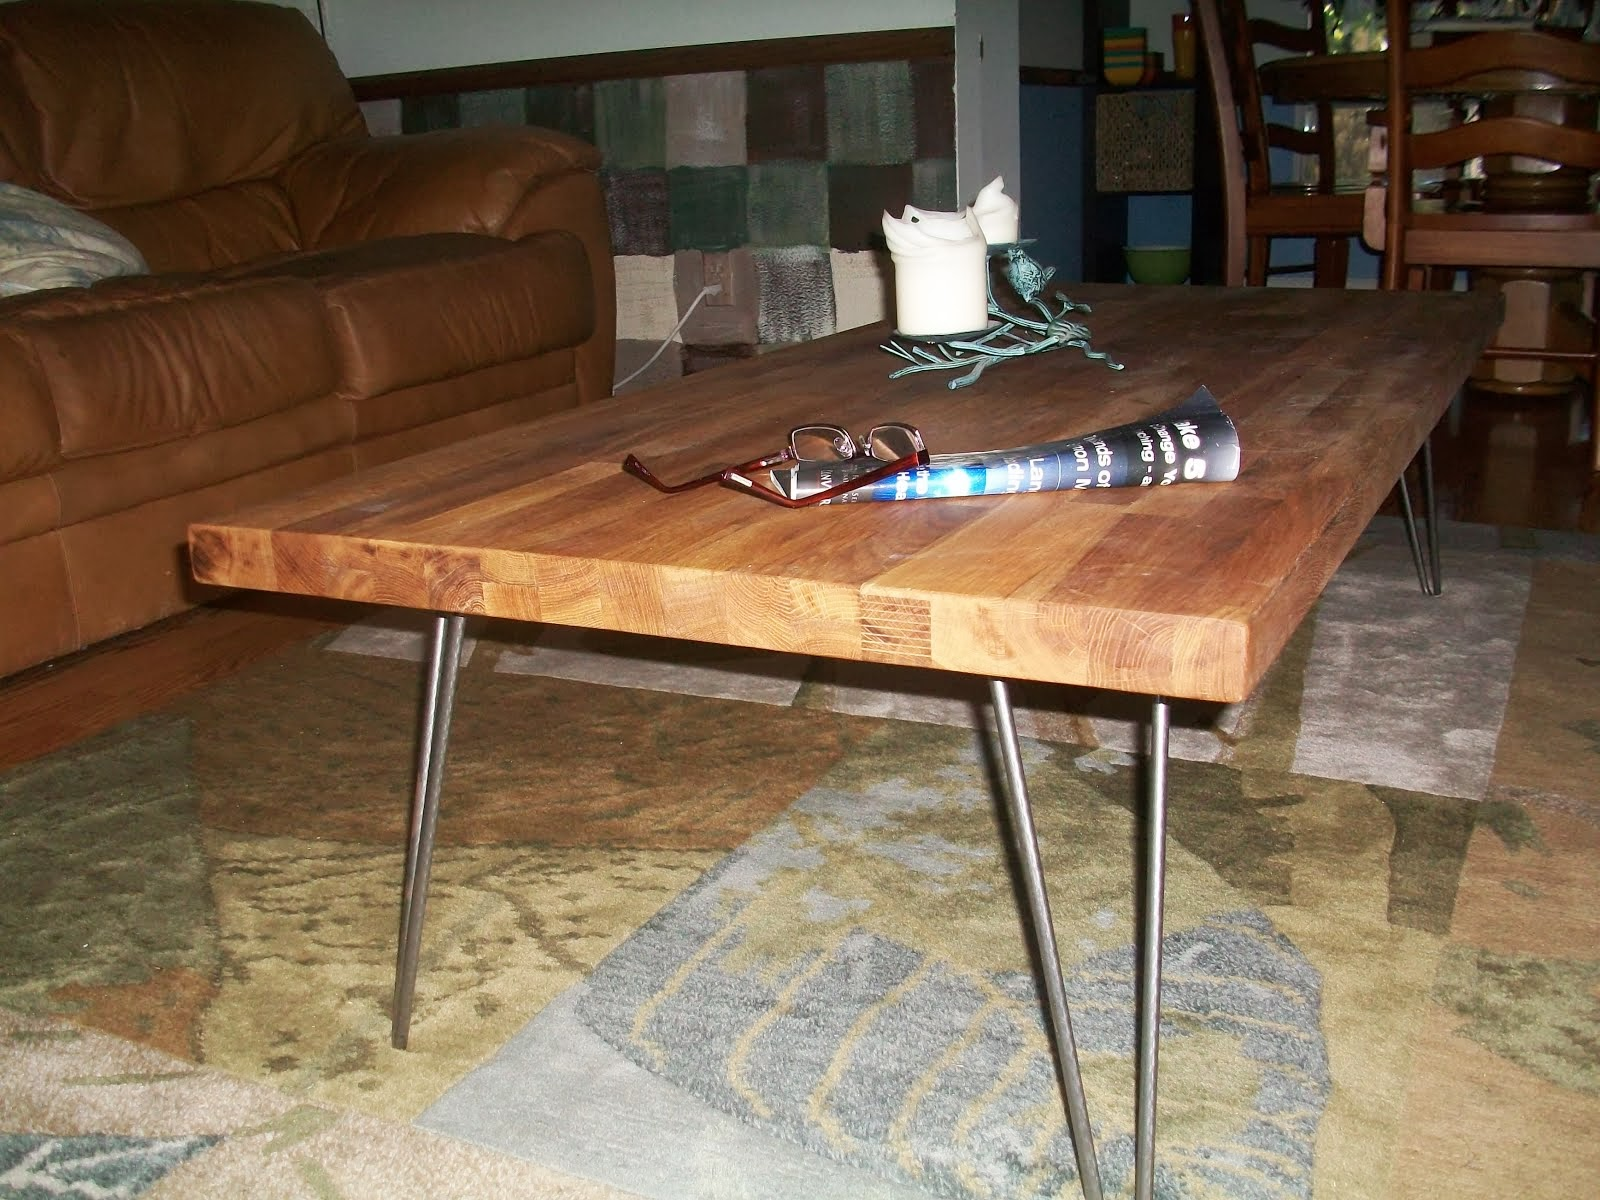 Butcher block coffee table and end table - IKEA Hackers ...